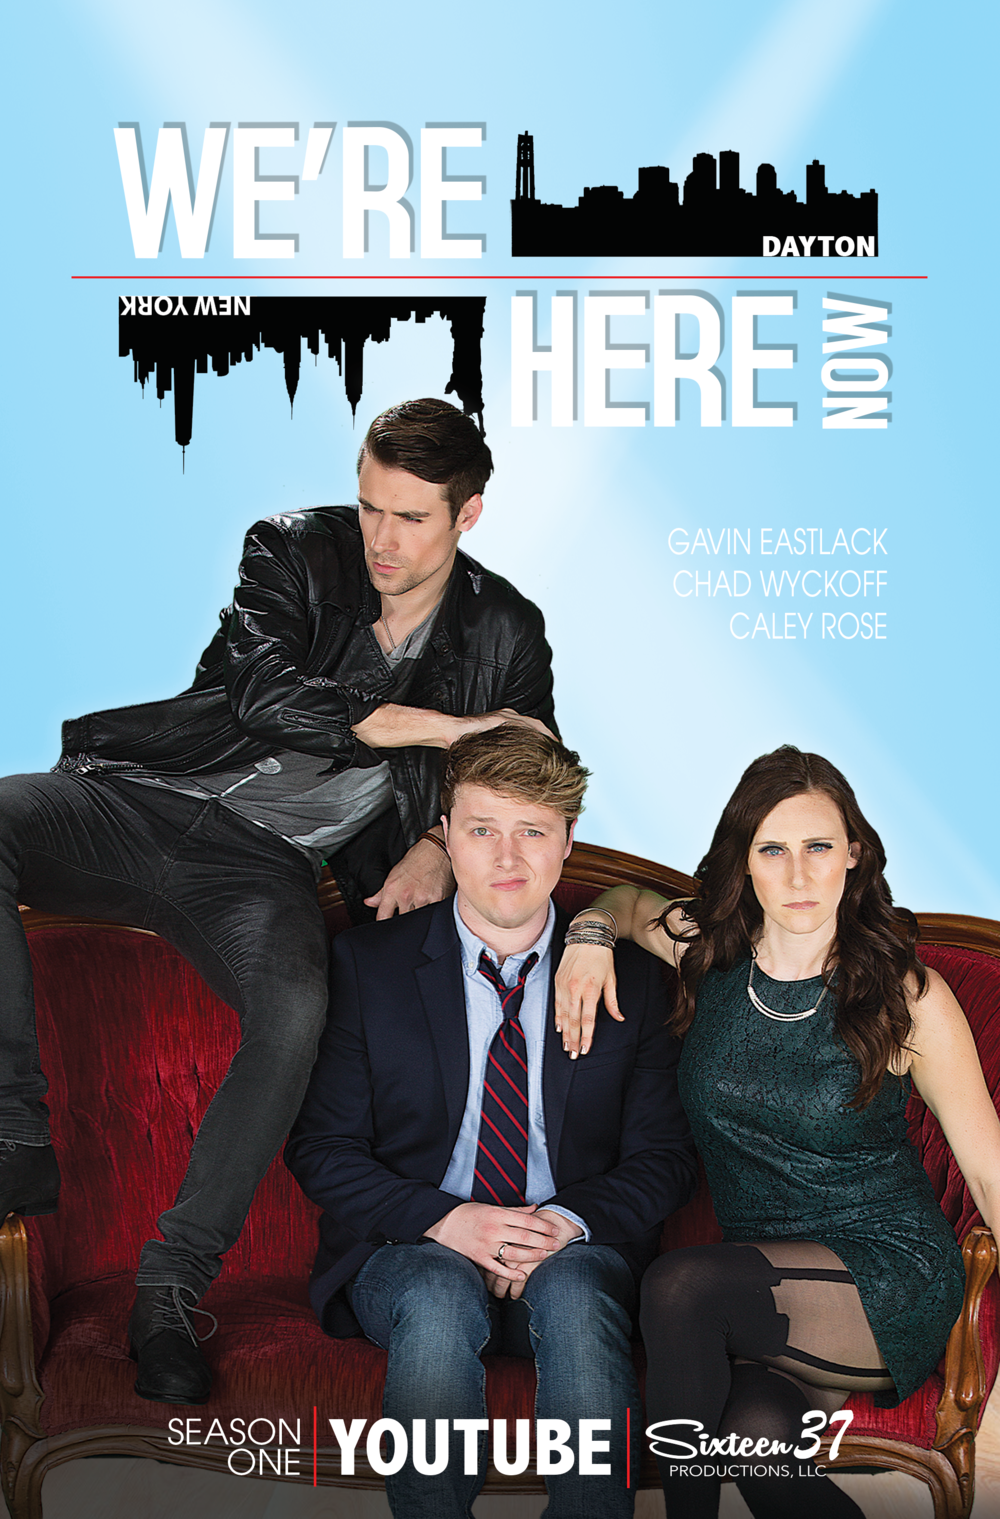 Promotional IMDB.com poster for comedy series, We're Here Now. Produced by Sixteen 37 Productions and The Trinity Film Group.